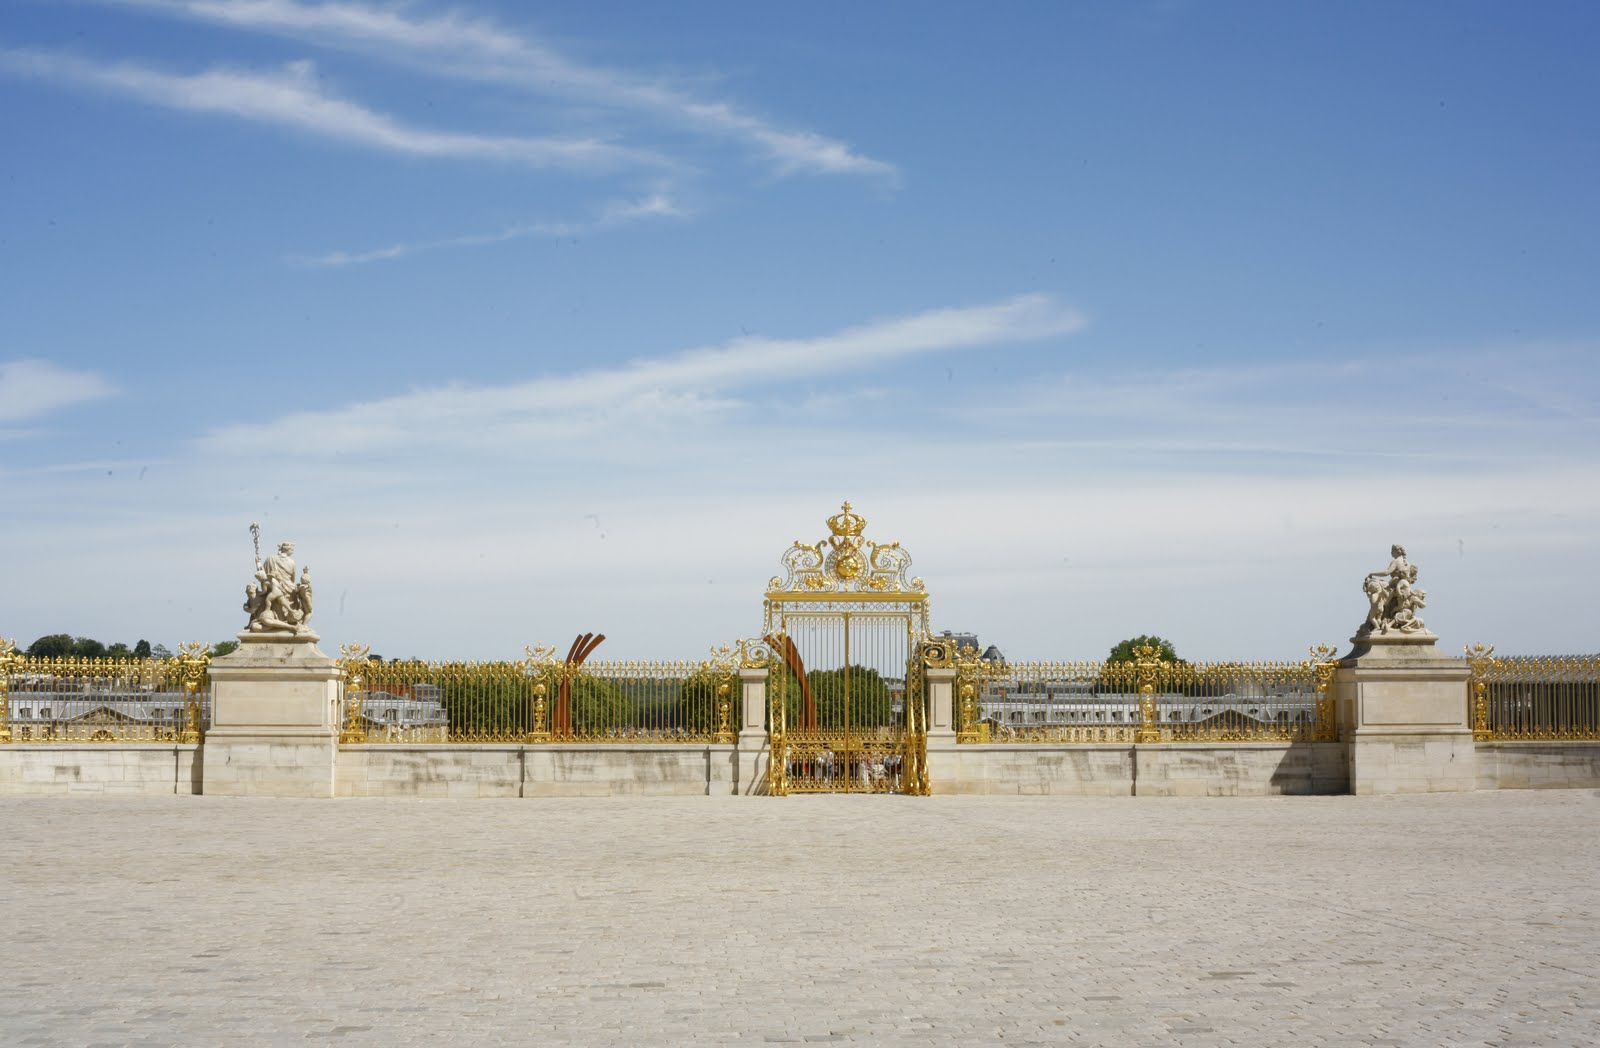 Inside the gates of Versailles looking out, Versailles, France - Photo by tara bogart